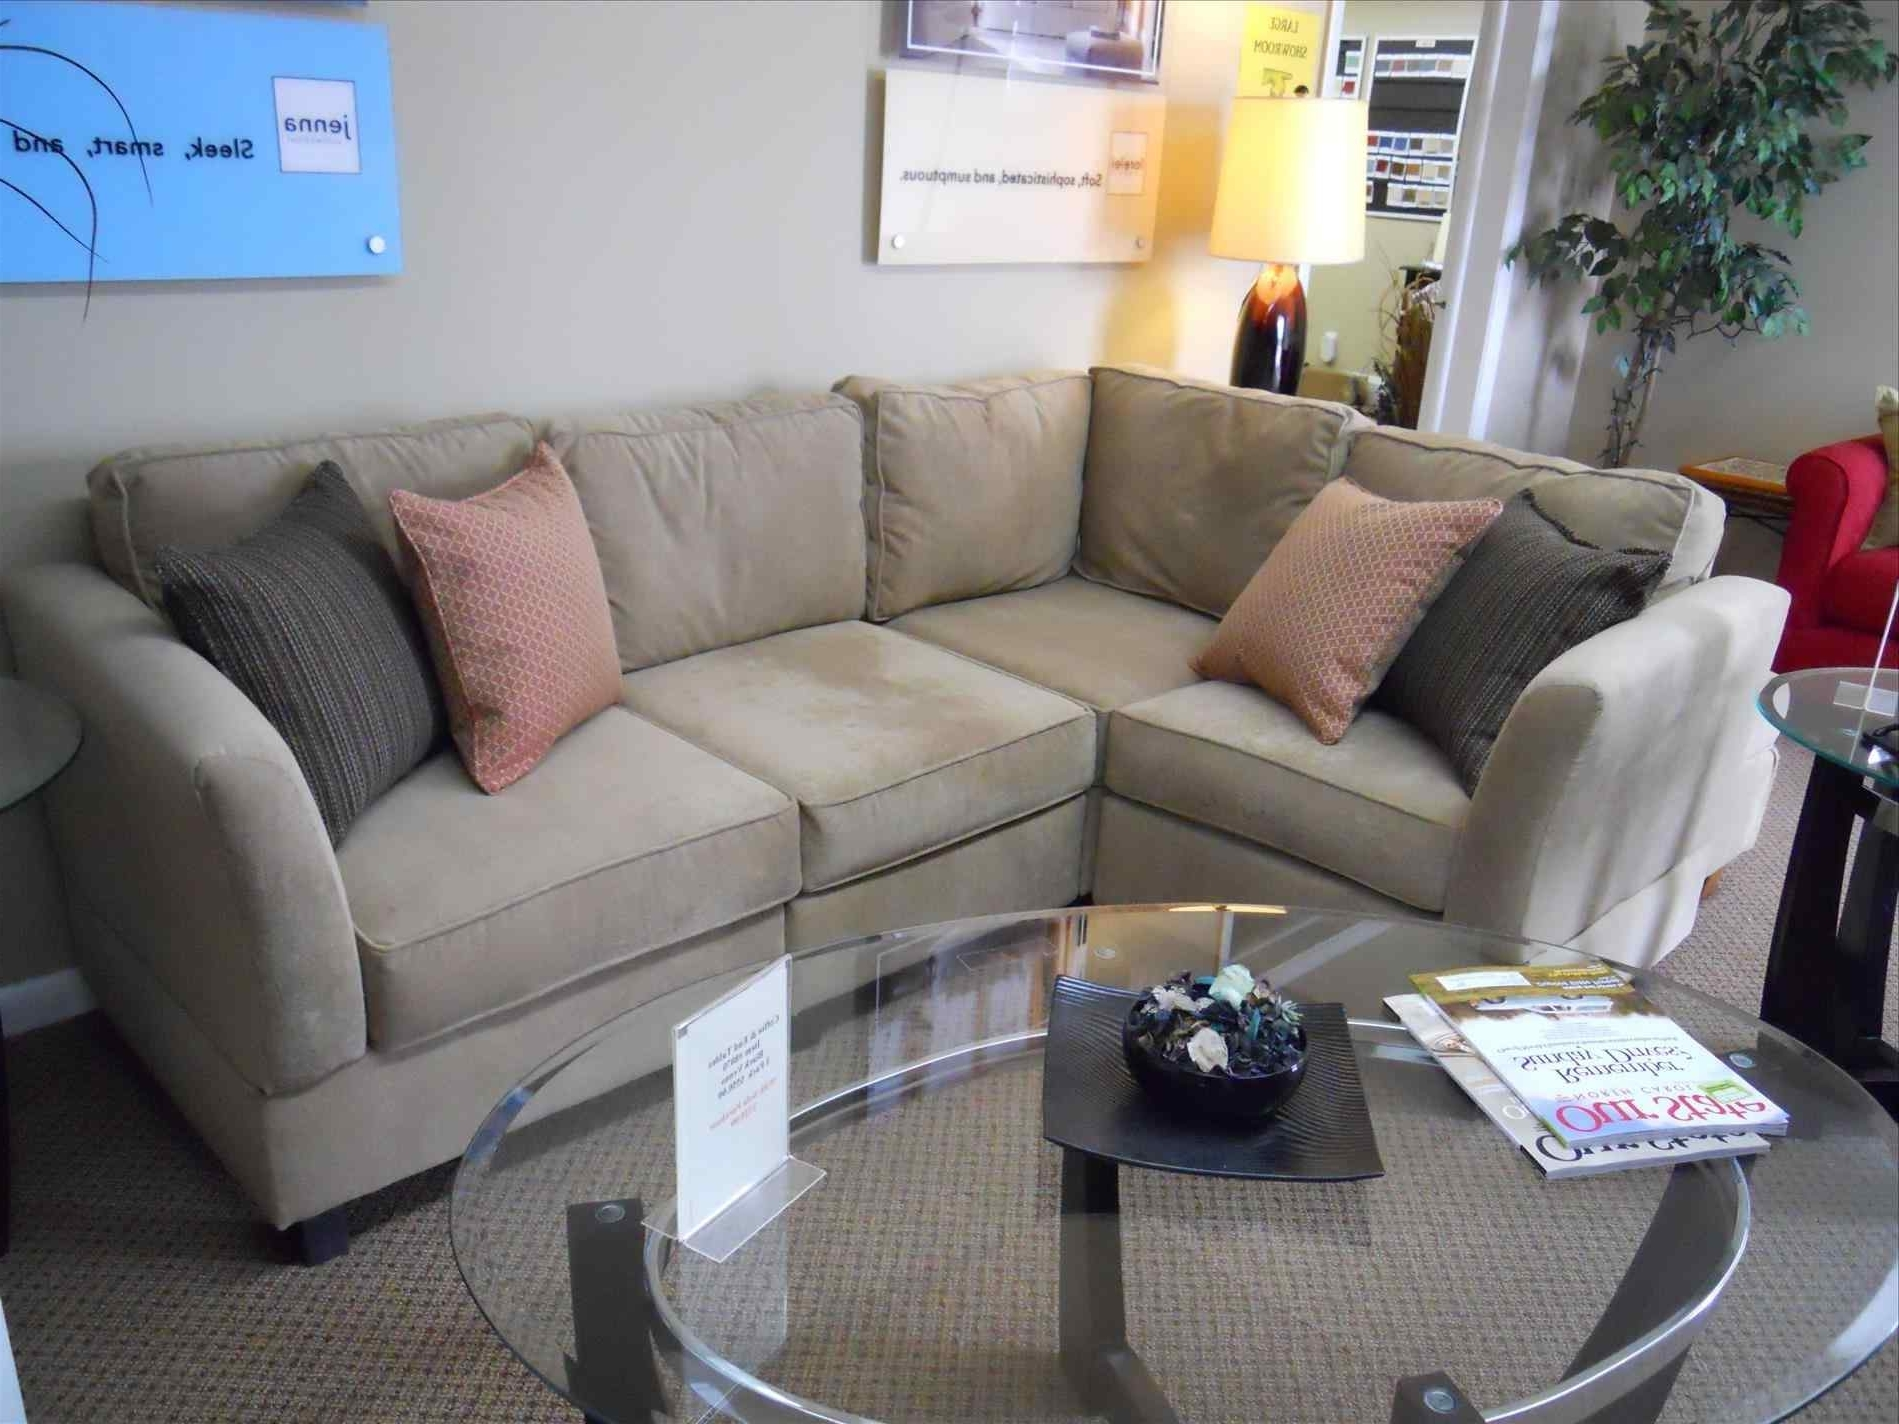 For Cozy Living Room Lazy Boy Chair Home Designs Lazy Sectional Pertaining To Current Sectional Sofas With Recliners For Small Spaces (View 8 of 15)